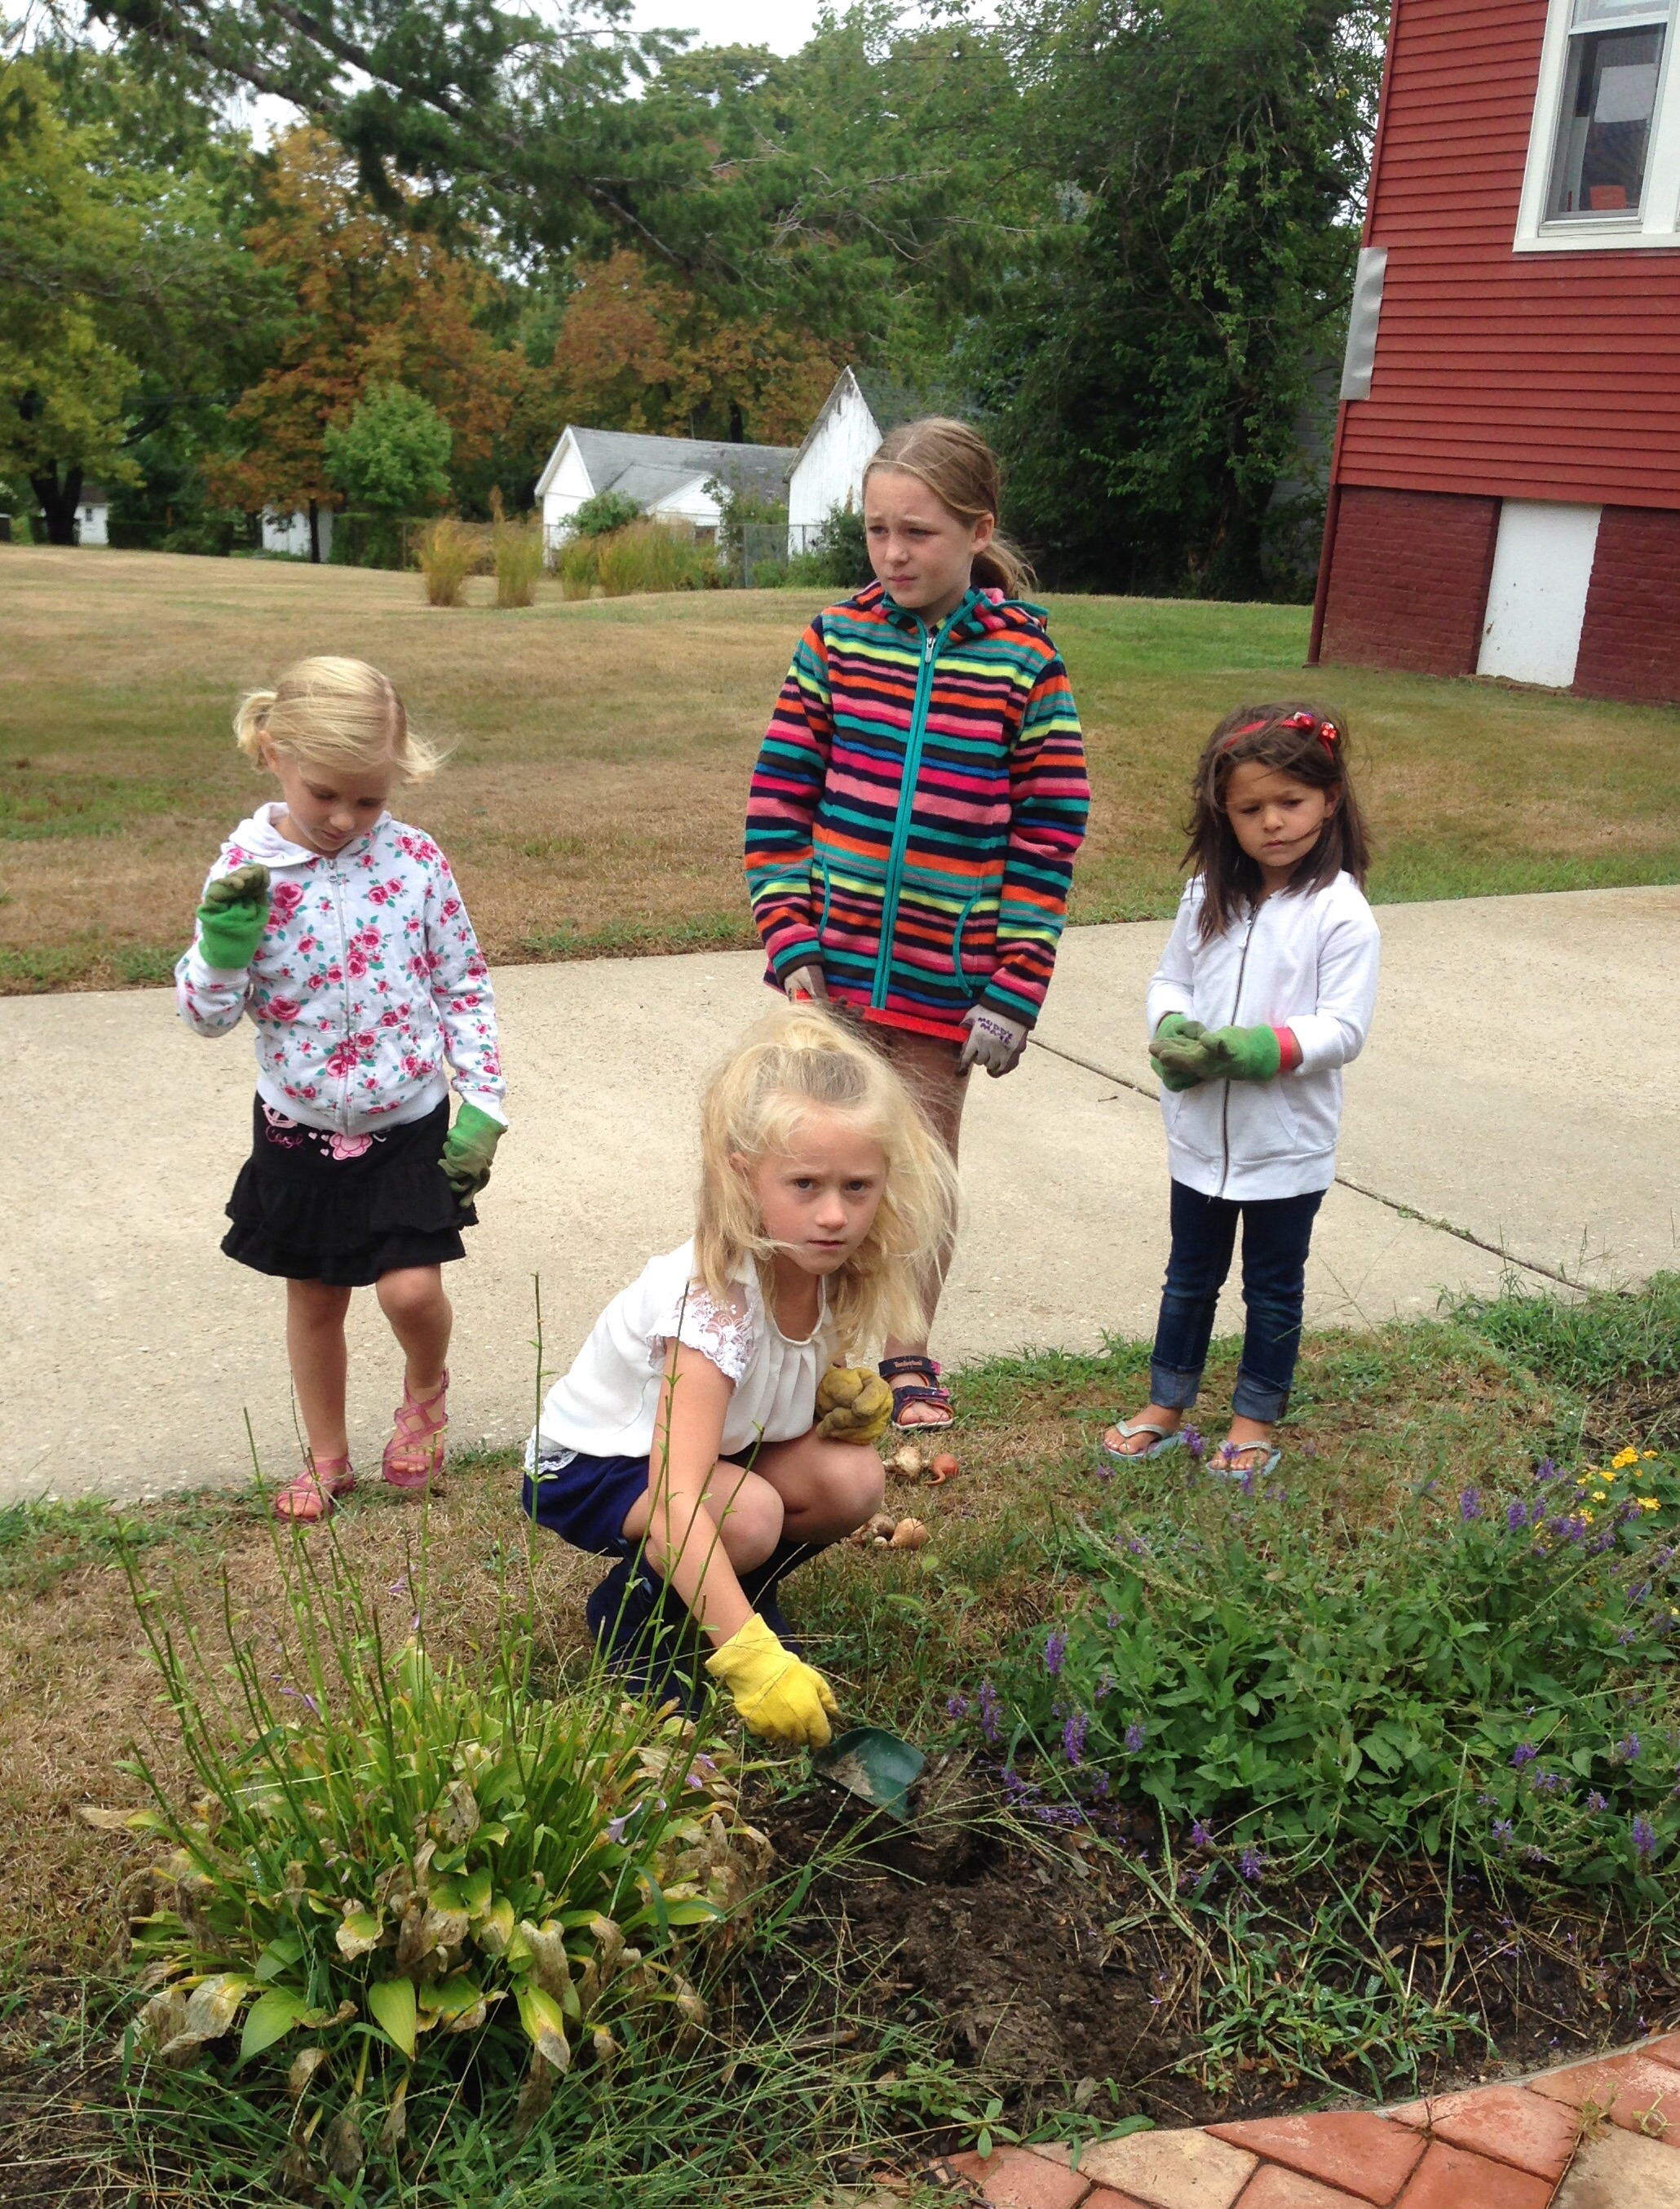 Sofie , Aulis, and Alexa work with Lila to plant